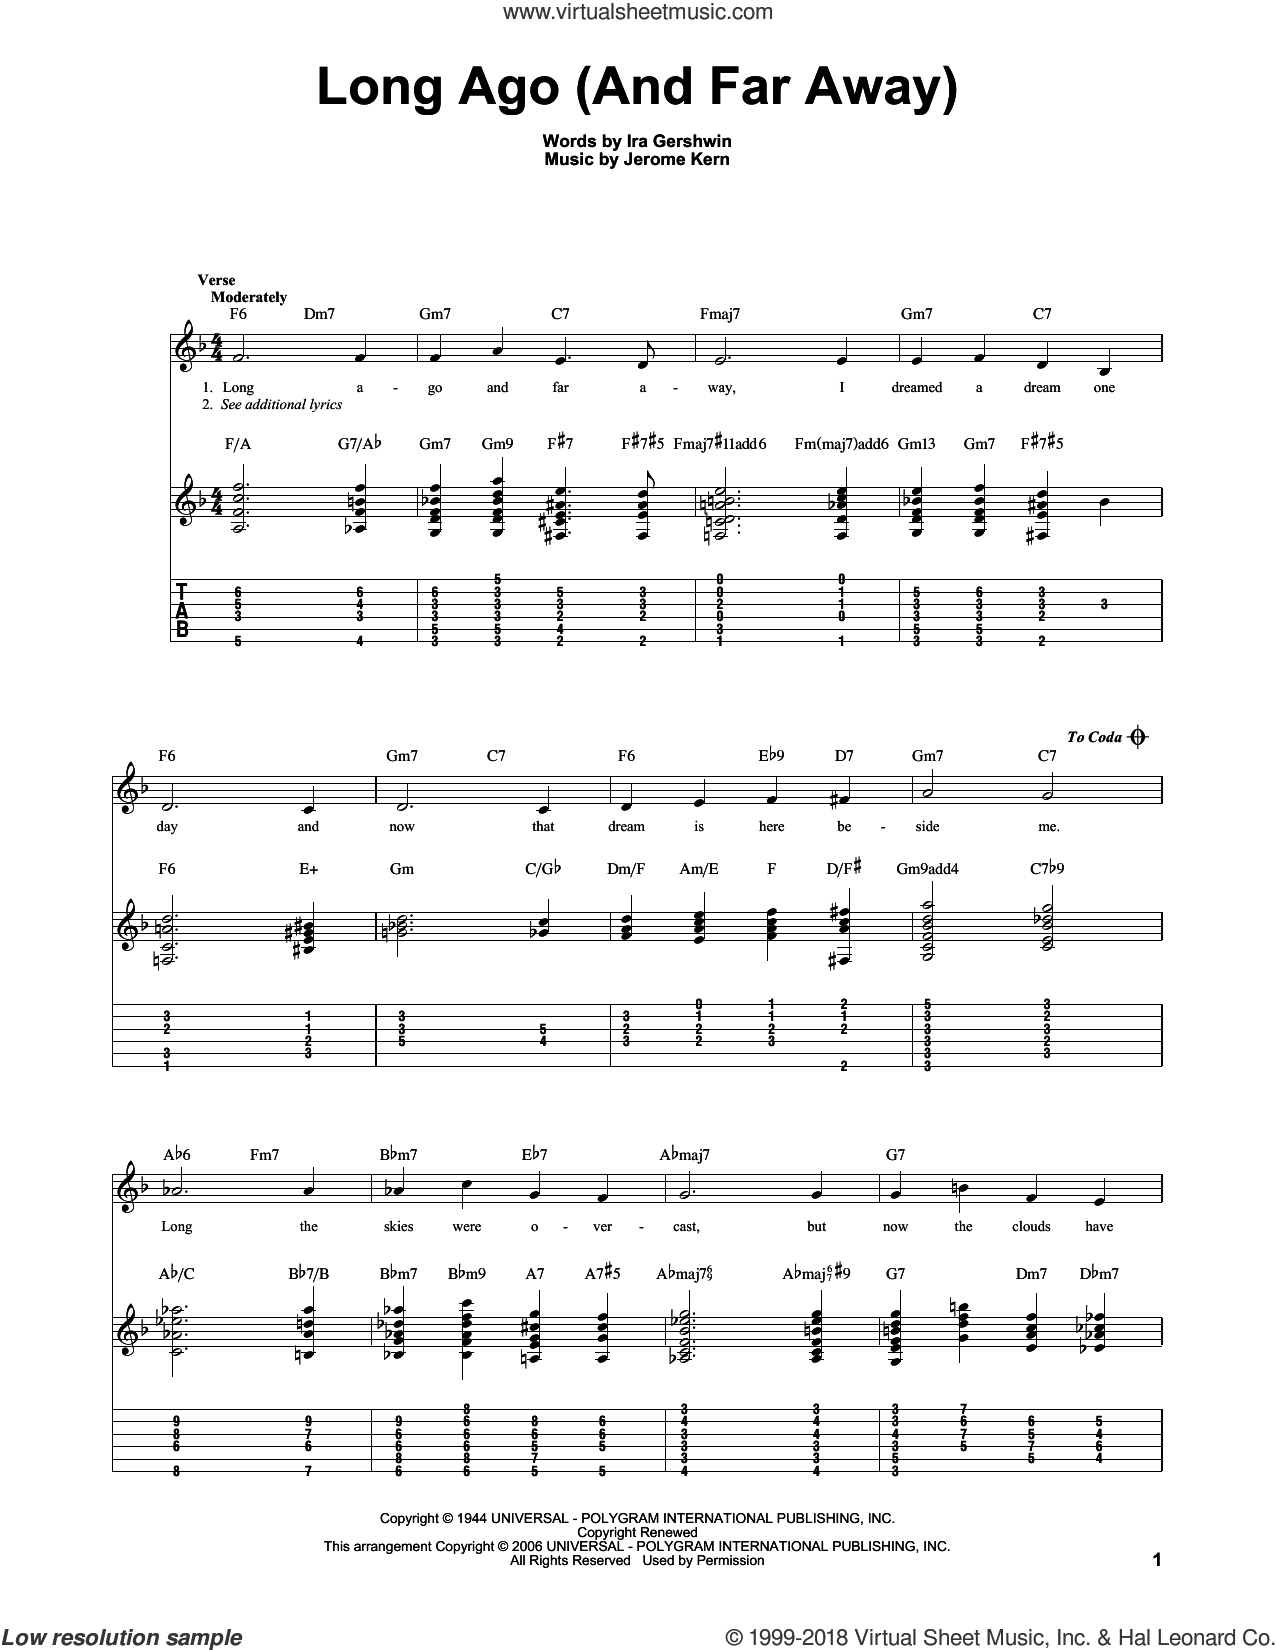 Long Ago (And Far Away) sheet music for guitar solo by Ira Gershwin and Jerome Kern. Score Image Preview.